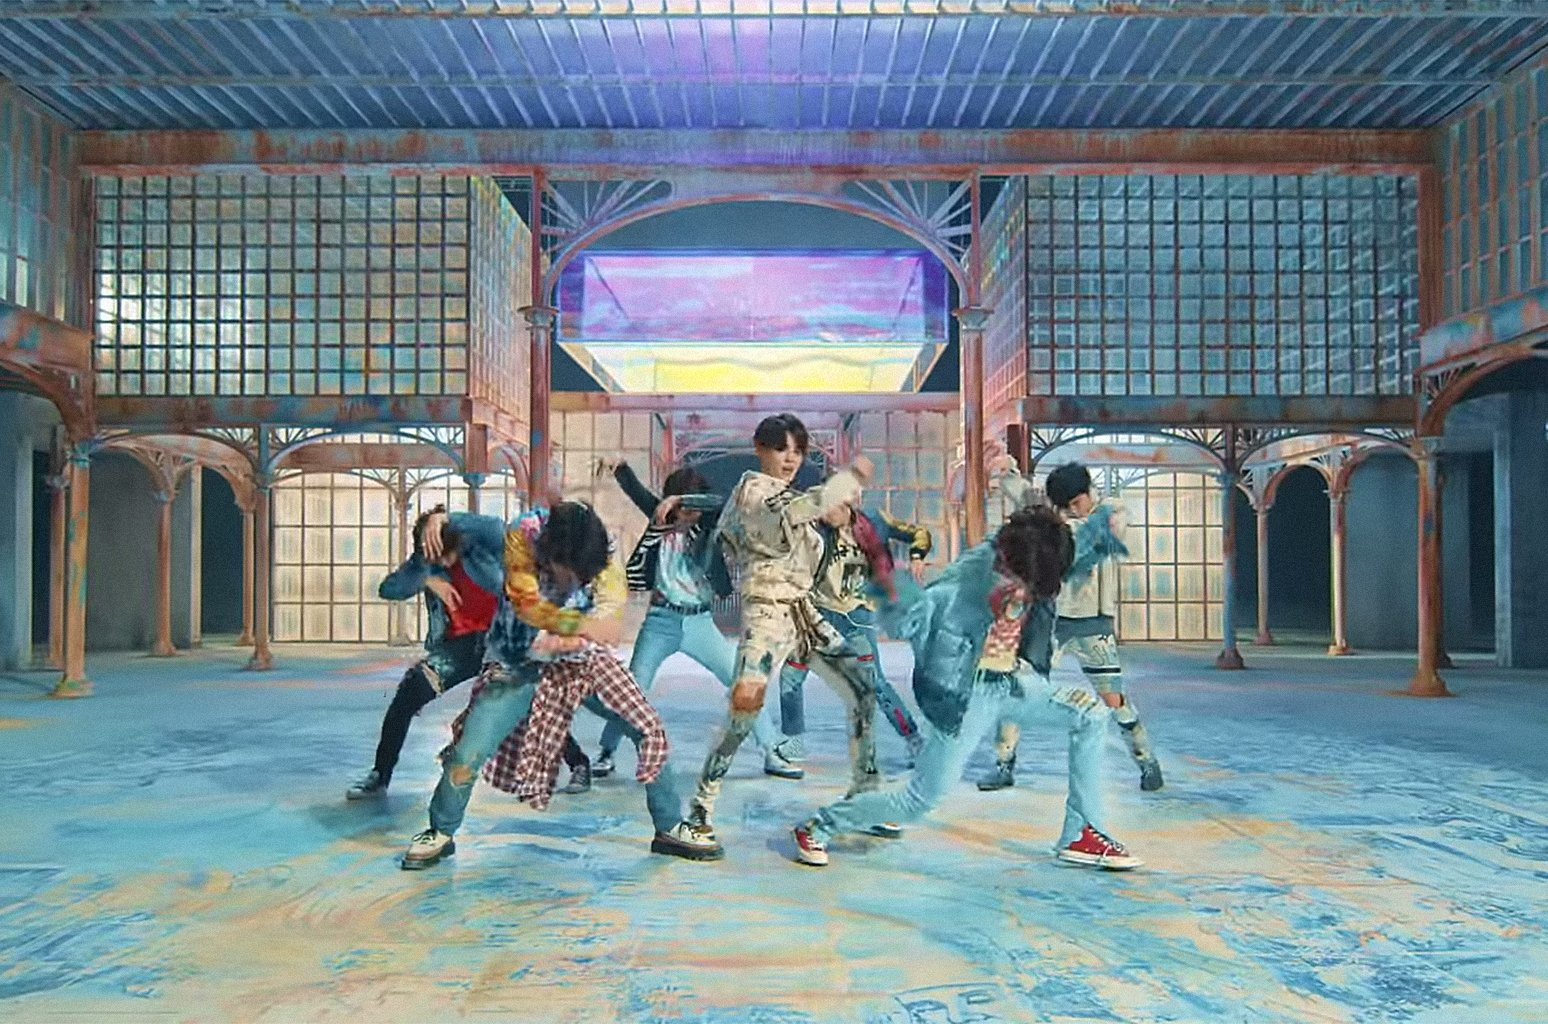 BTS' 'Fake Love' music video has the biggest 24-hour YouTube debut of 2018 https://t.co/7jfgVvrPvA https://t.co/llQUF3hvM7